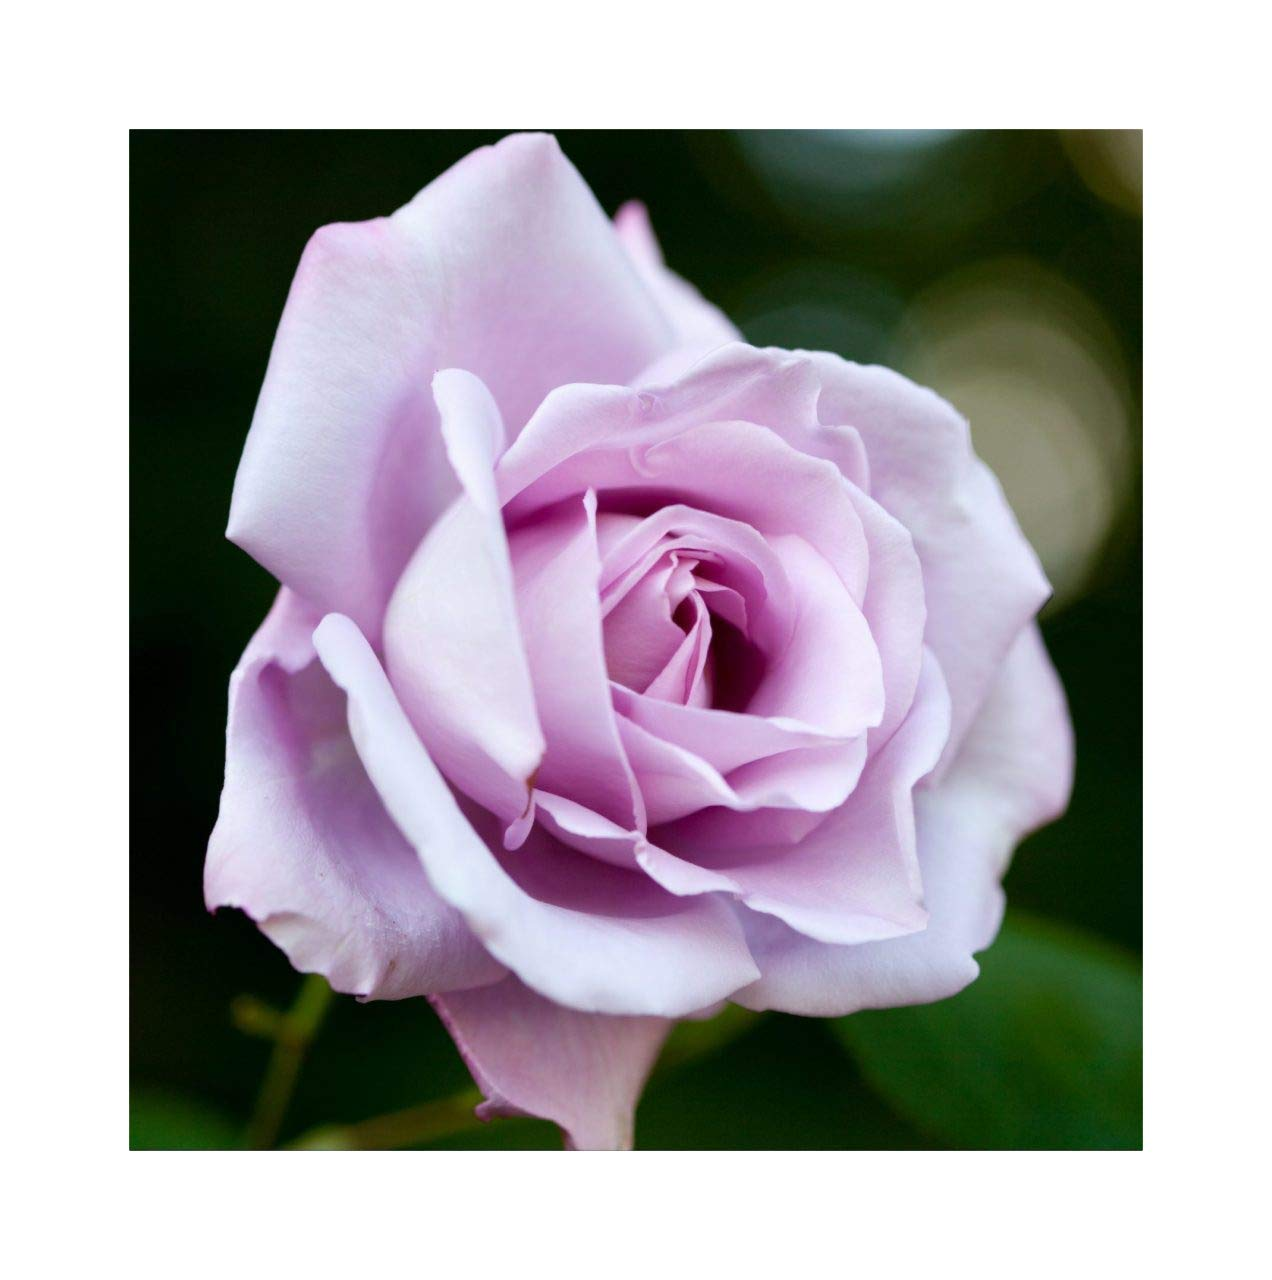 Rose Bare Root Plant 'Blue Moon' Hybrid Tea Blue/Lilac Highly Scented by Plug Plants Express Limited